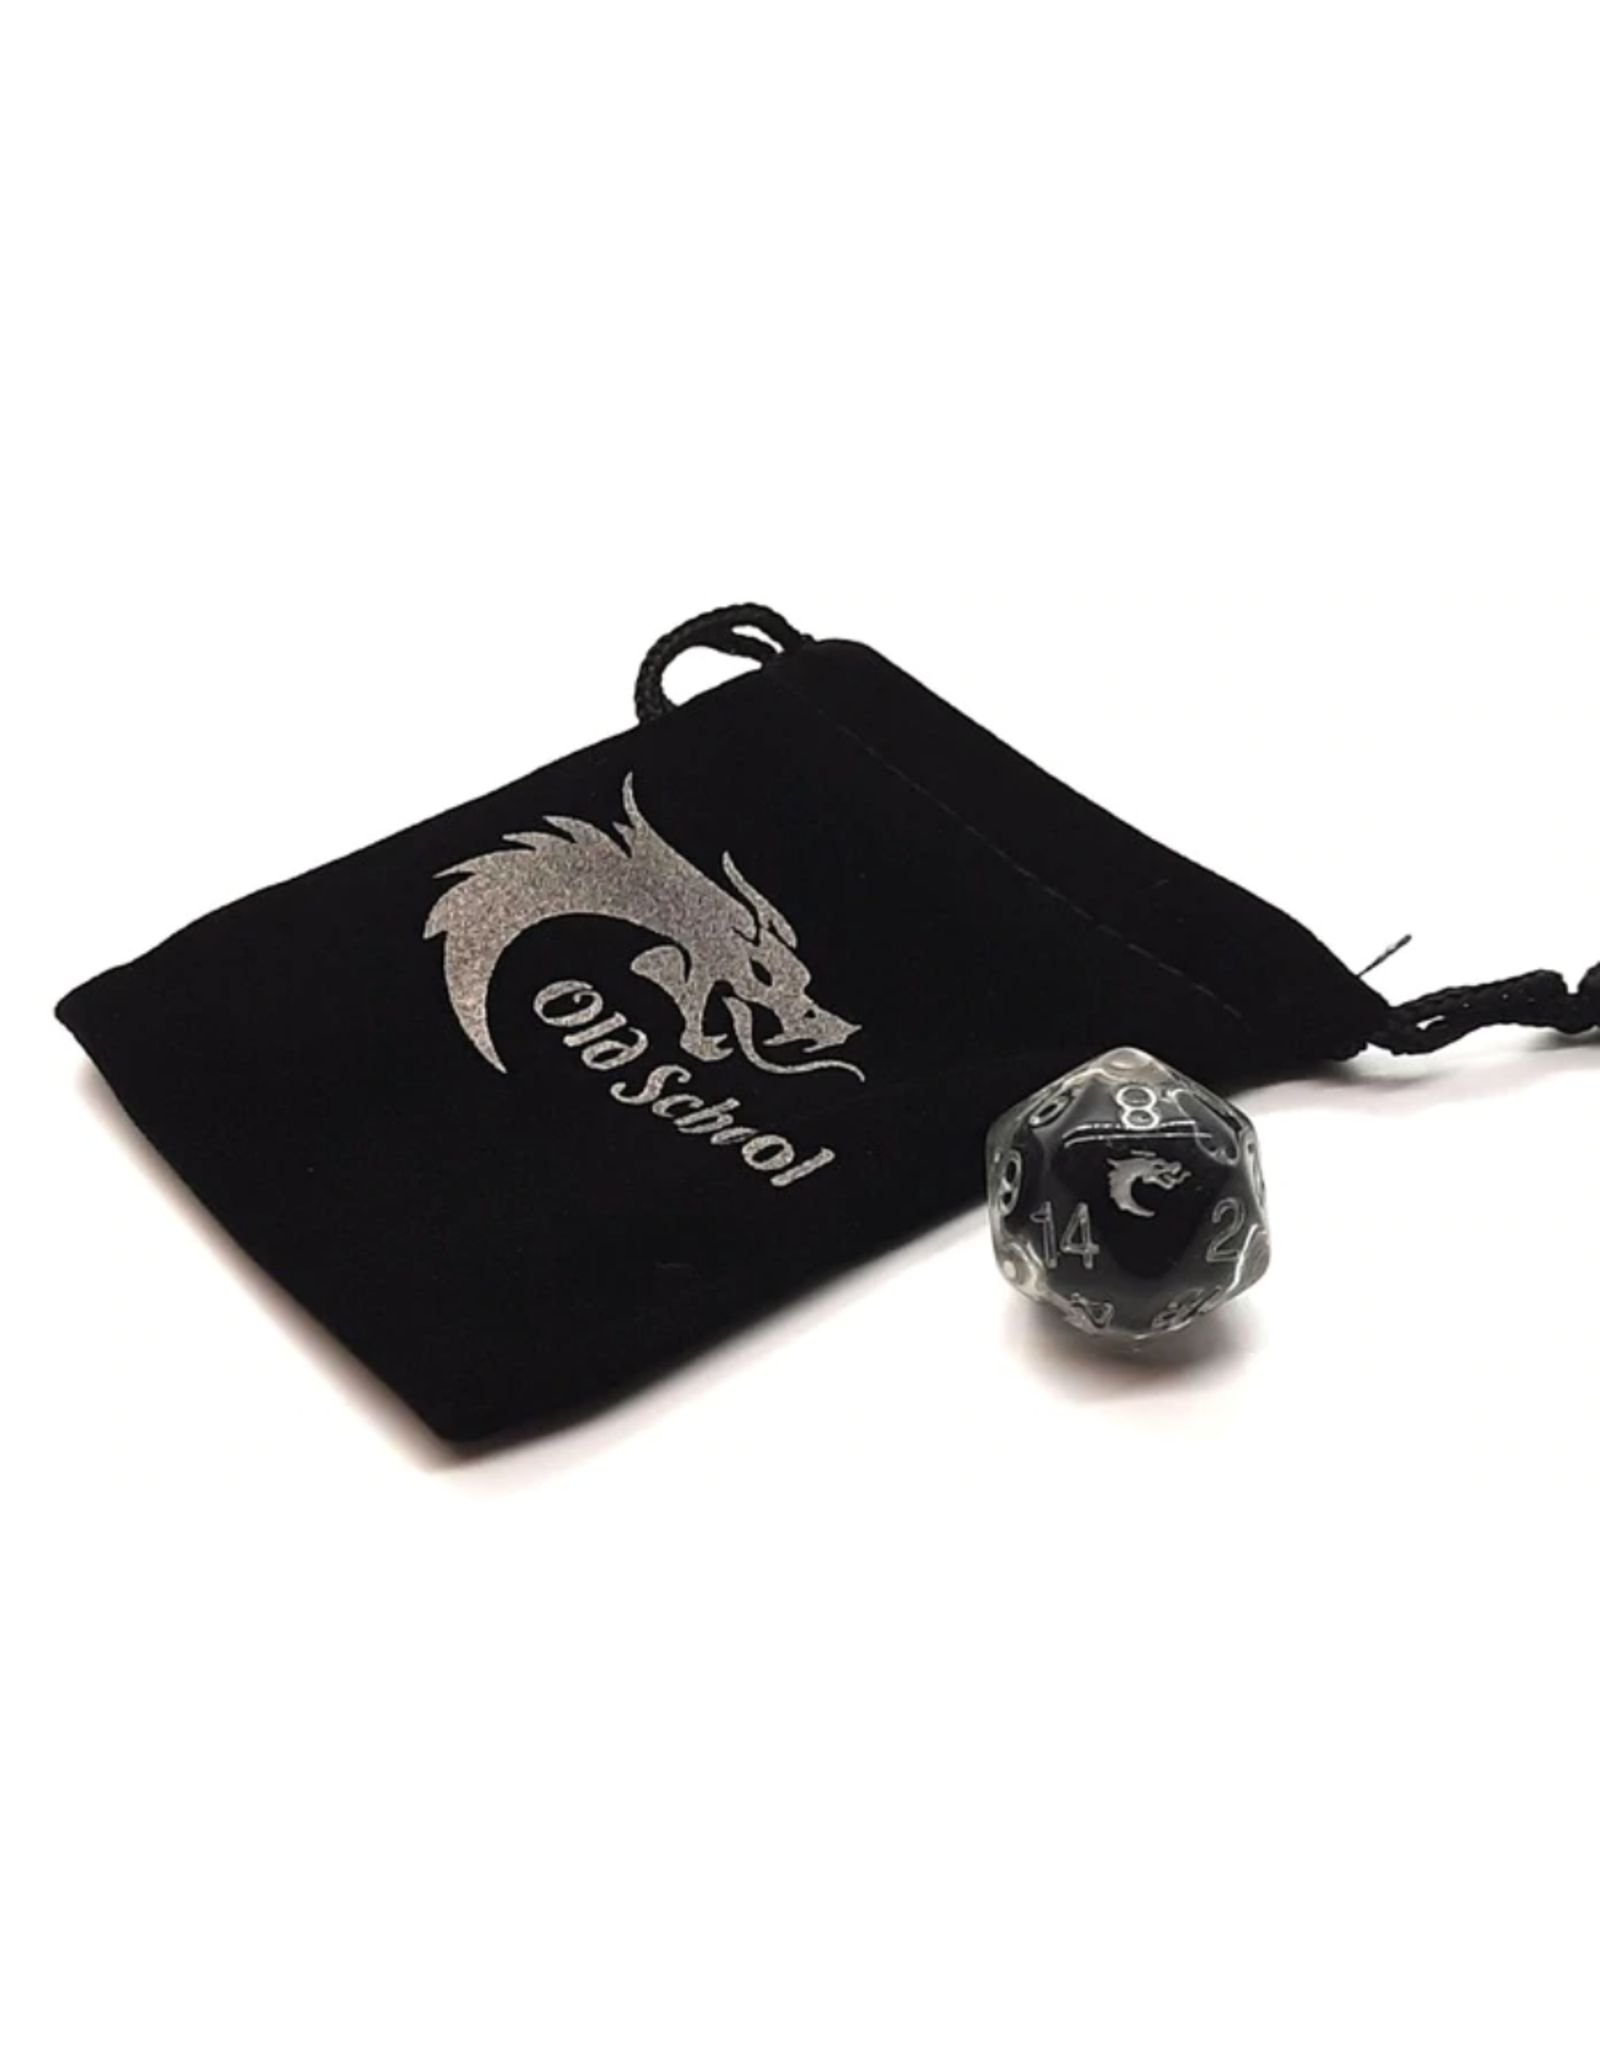 Old School Dice Old School D20 DnD RPG Die: Liquid Infused - Metallic Black